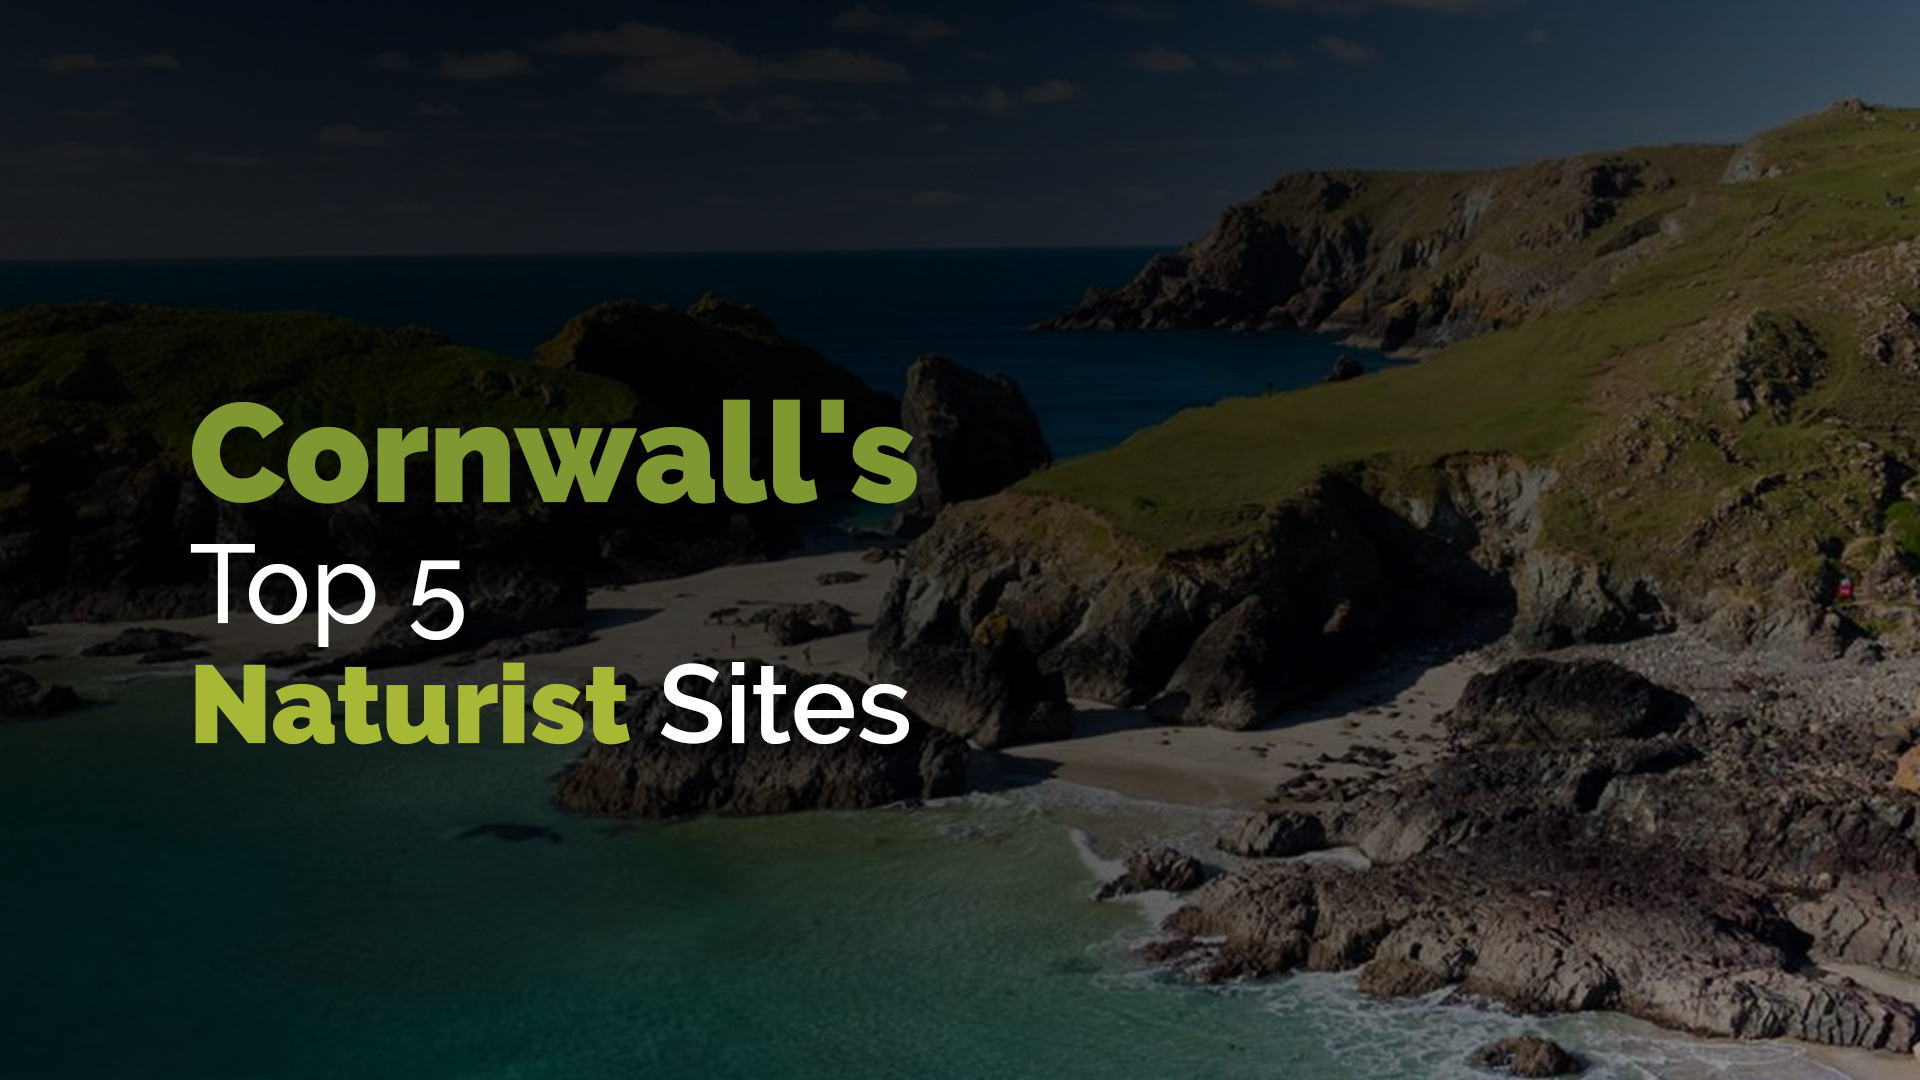 Cornwall's Top 5 Naturist Sites